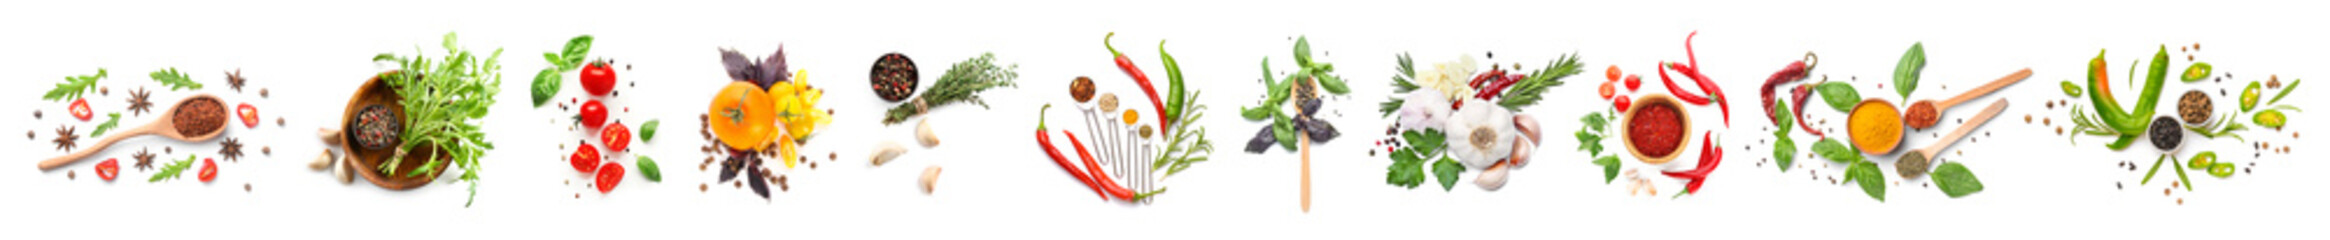 Photo sur Plexiglas Légumes frais Different fresh spices, herbs and vegetables on white background